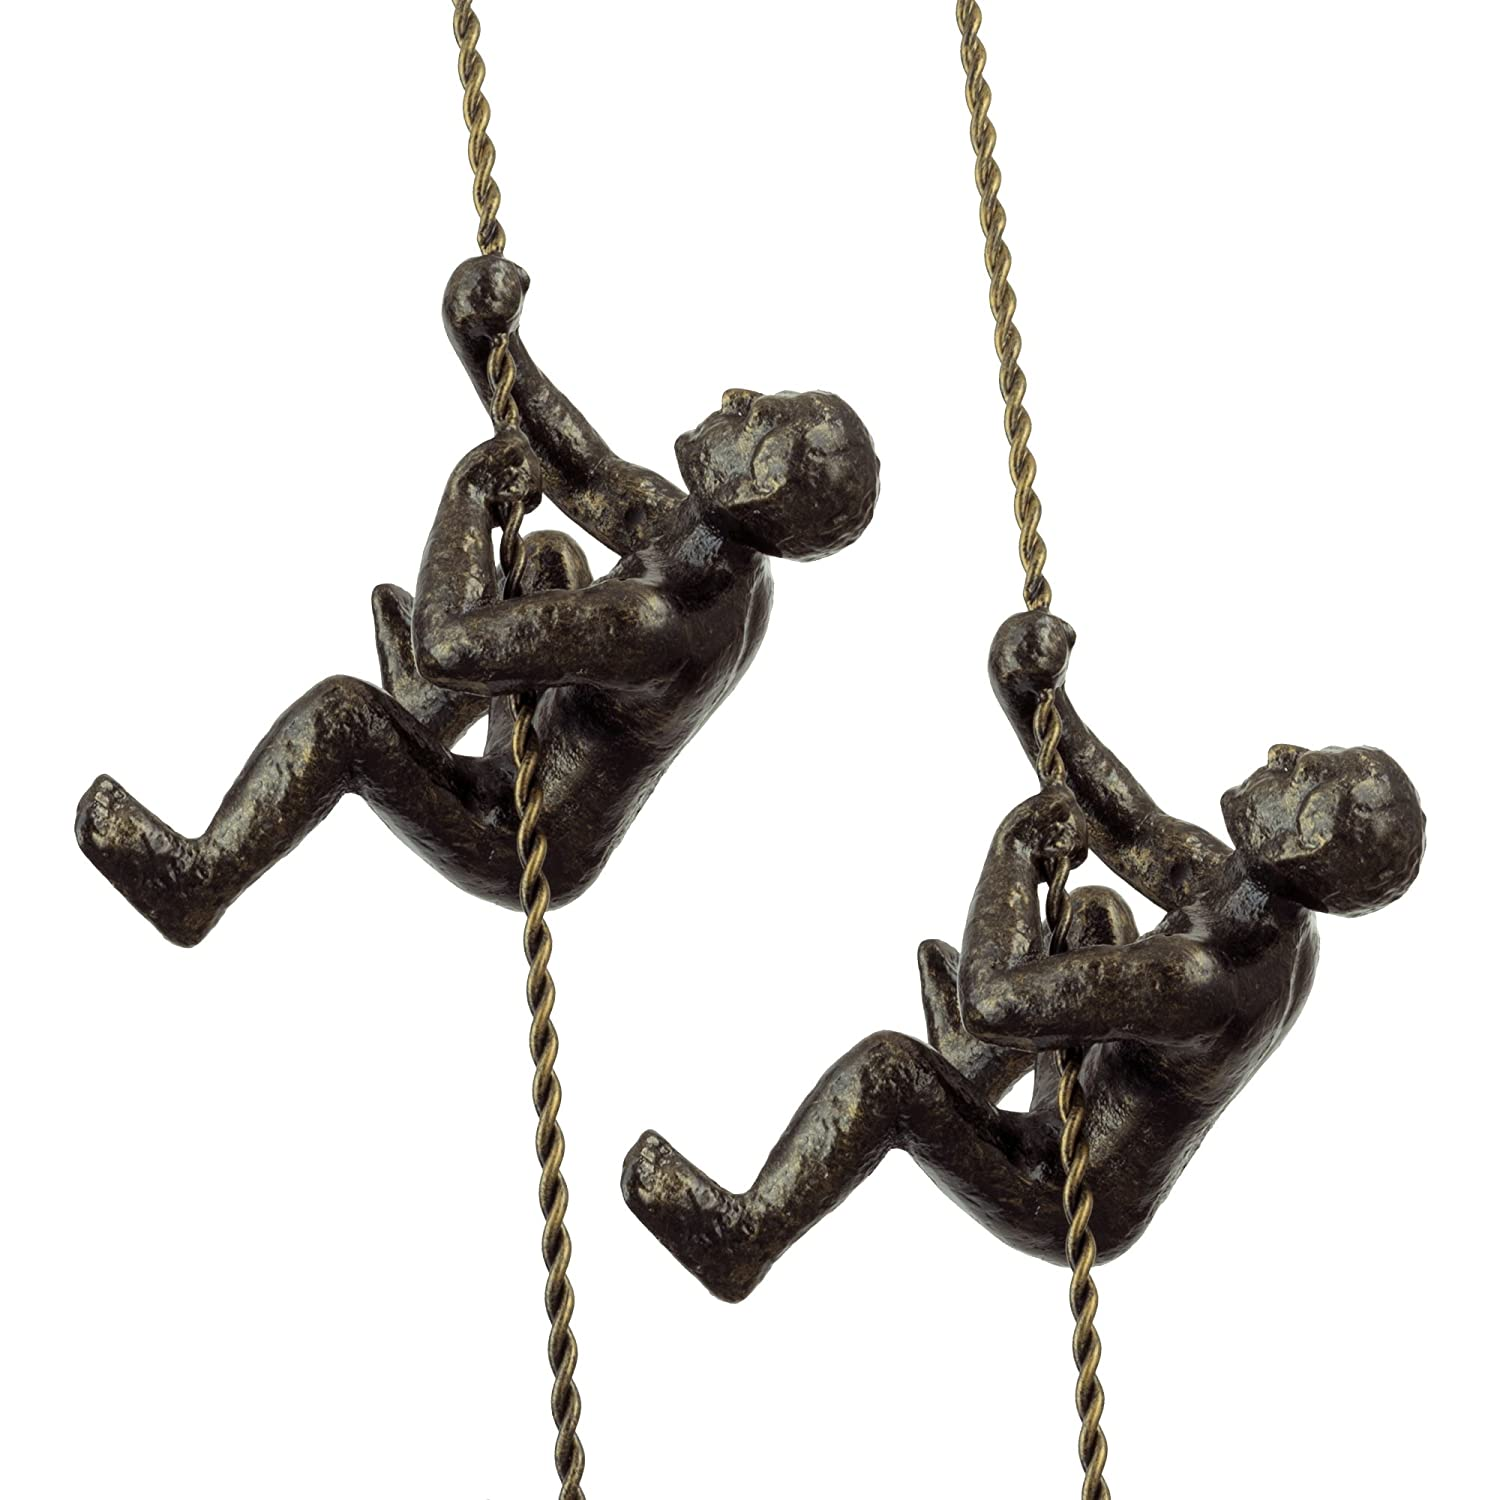 "Kira Home Titan 6"" Climbing Man Metal Wall Sculpture, Hand-Painted Charcoal Gold Finish (Set of 2)"